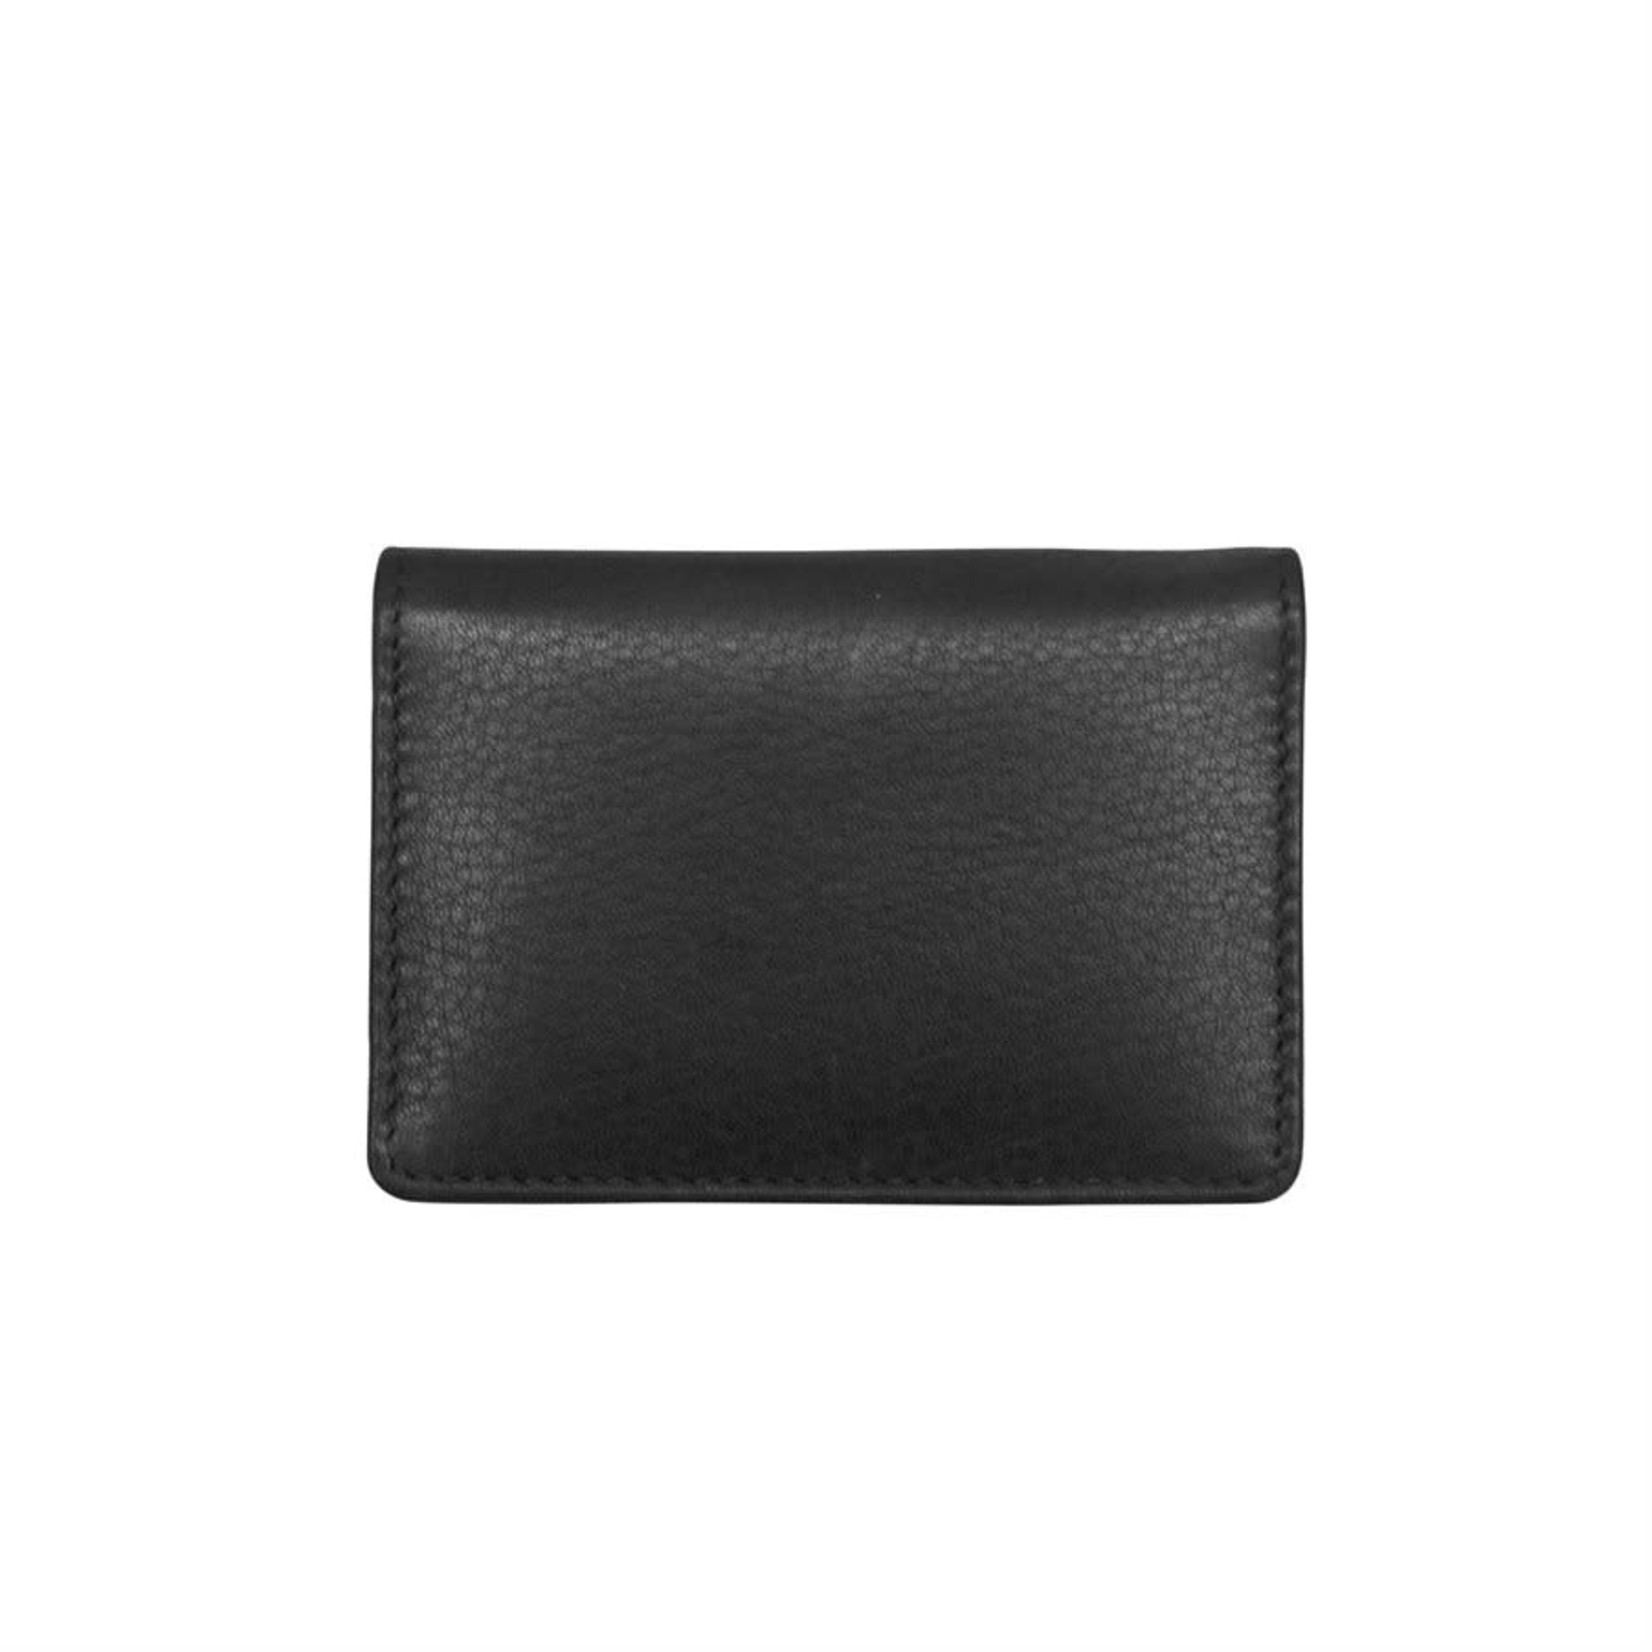 Leather Handbags and Accessories 7111 Black - Business Card Case